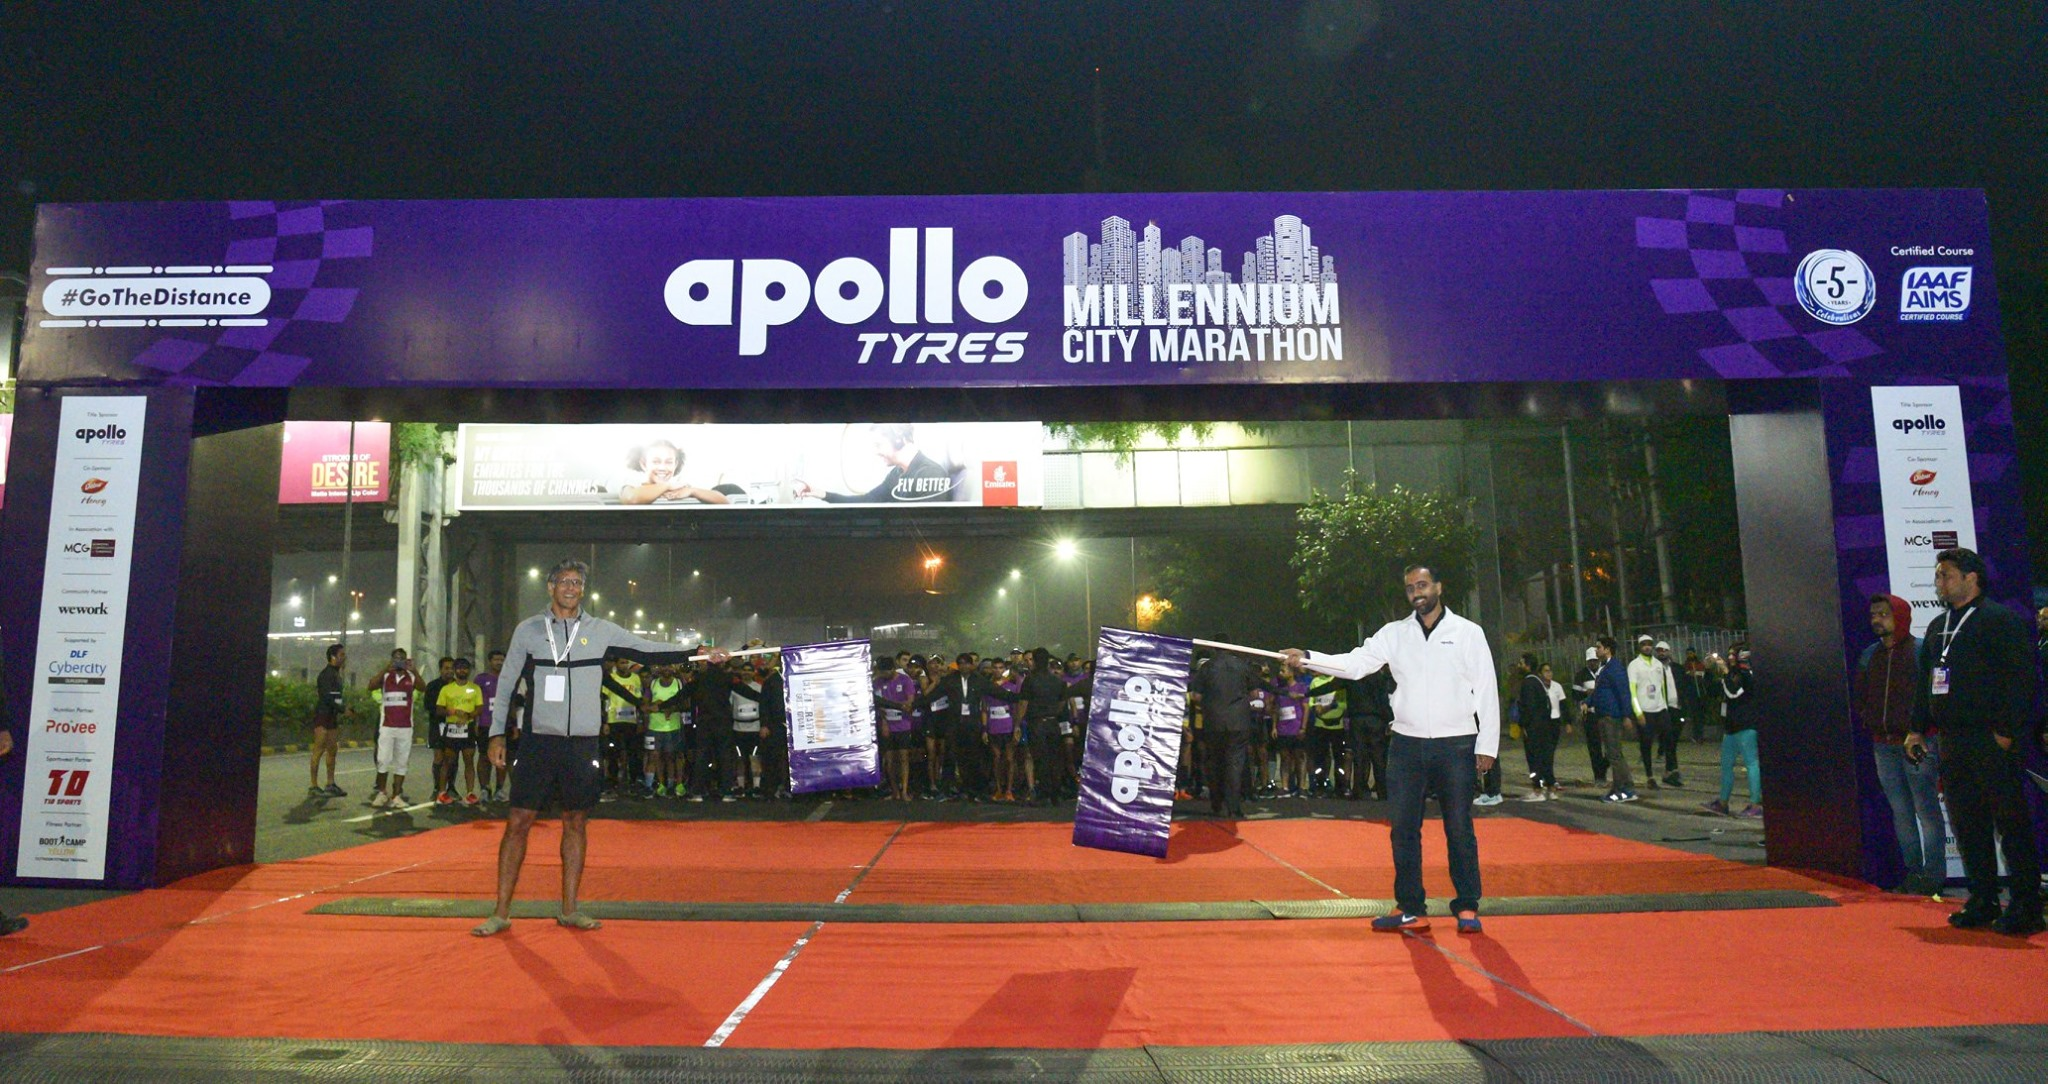 apollo-tyres-millennium-city-marathon-2019